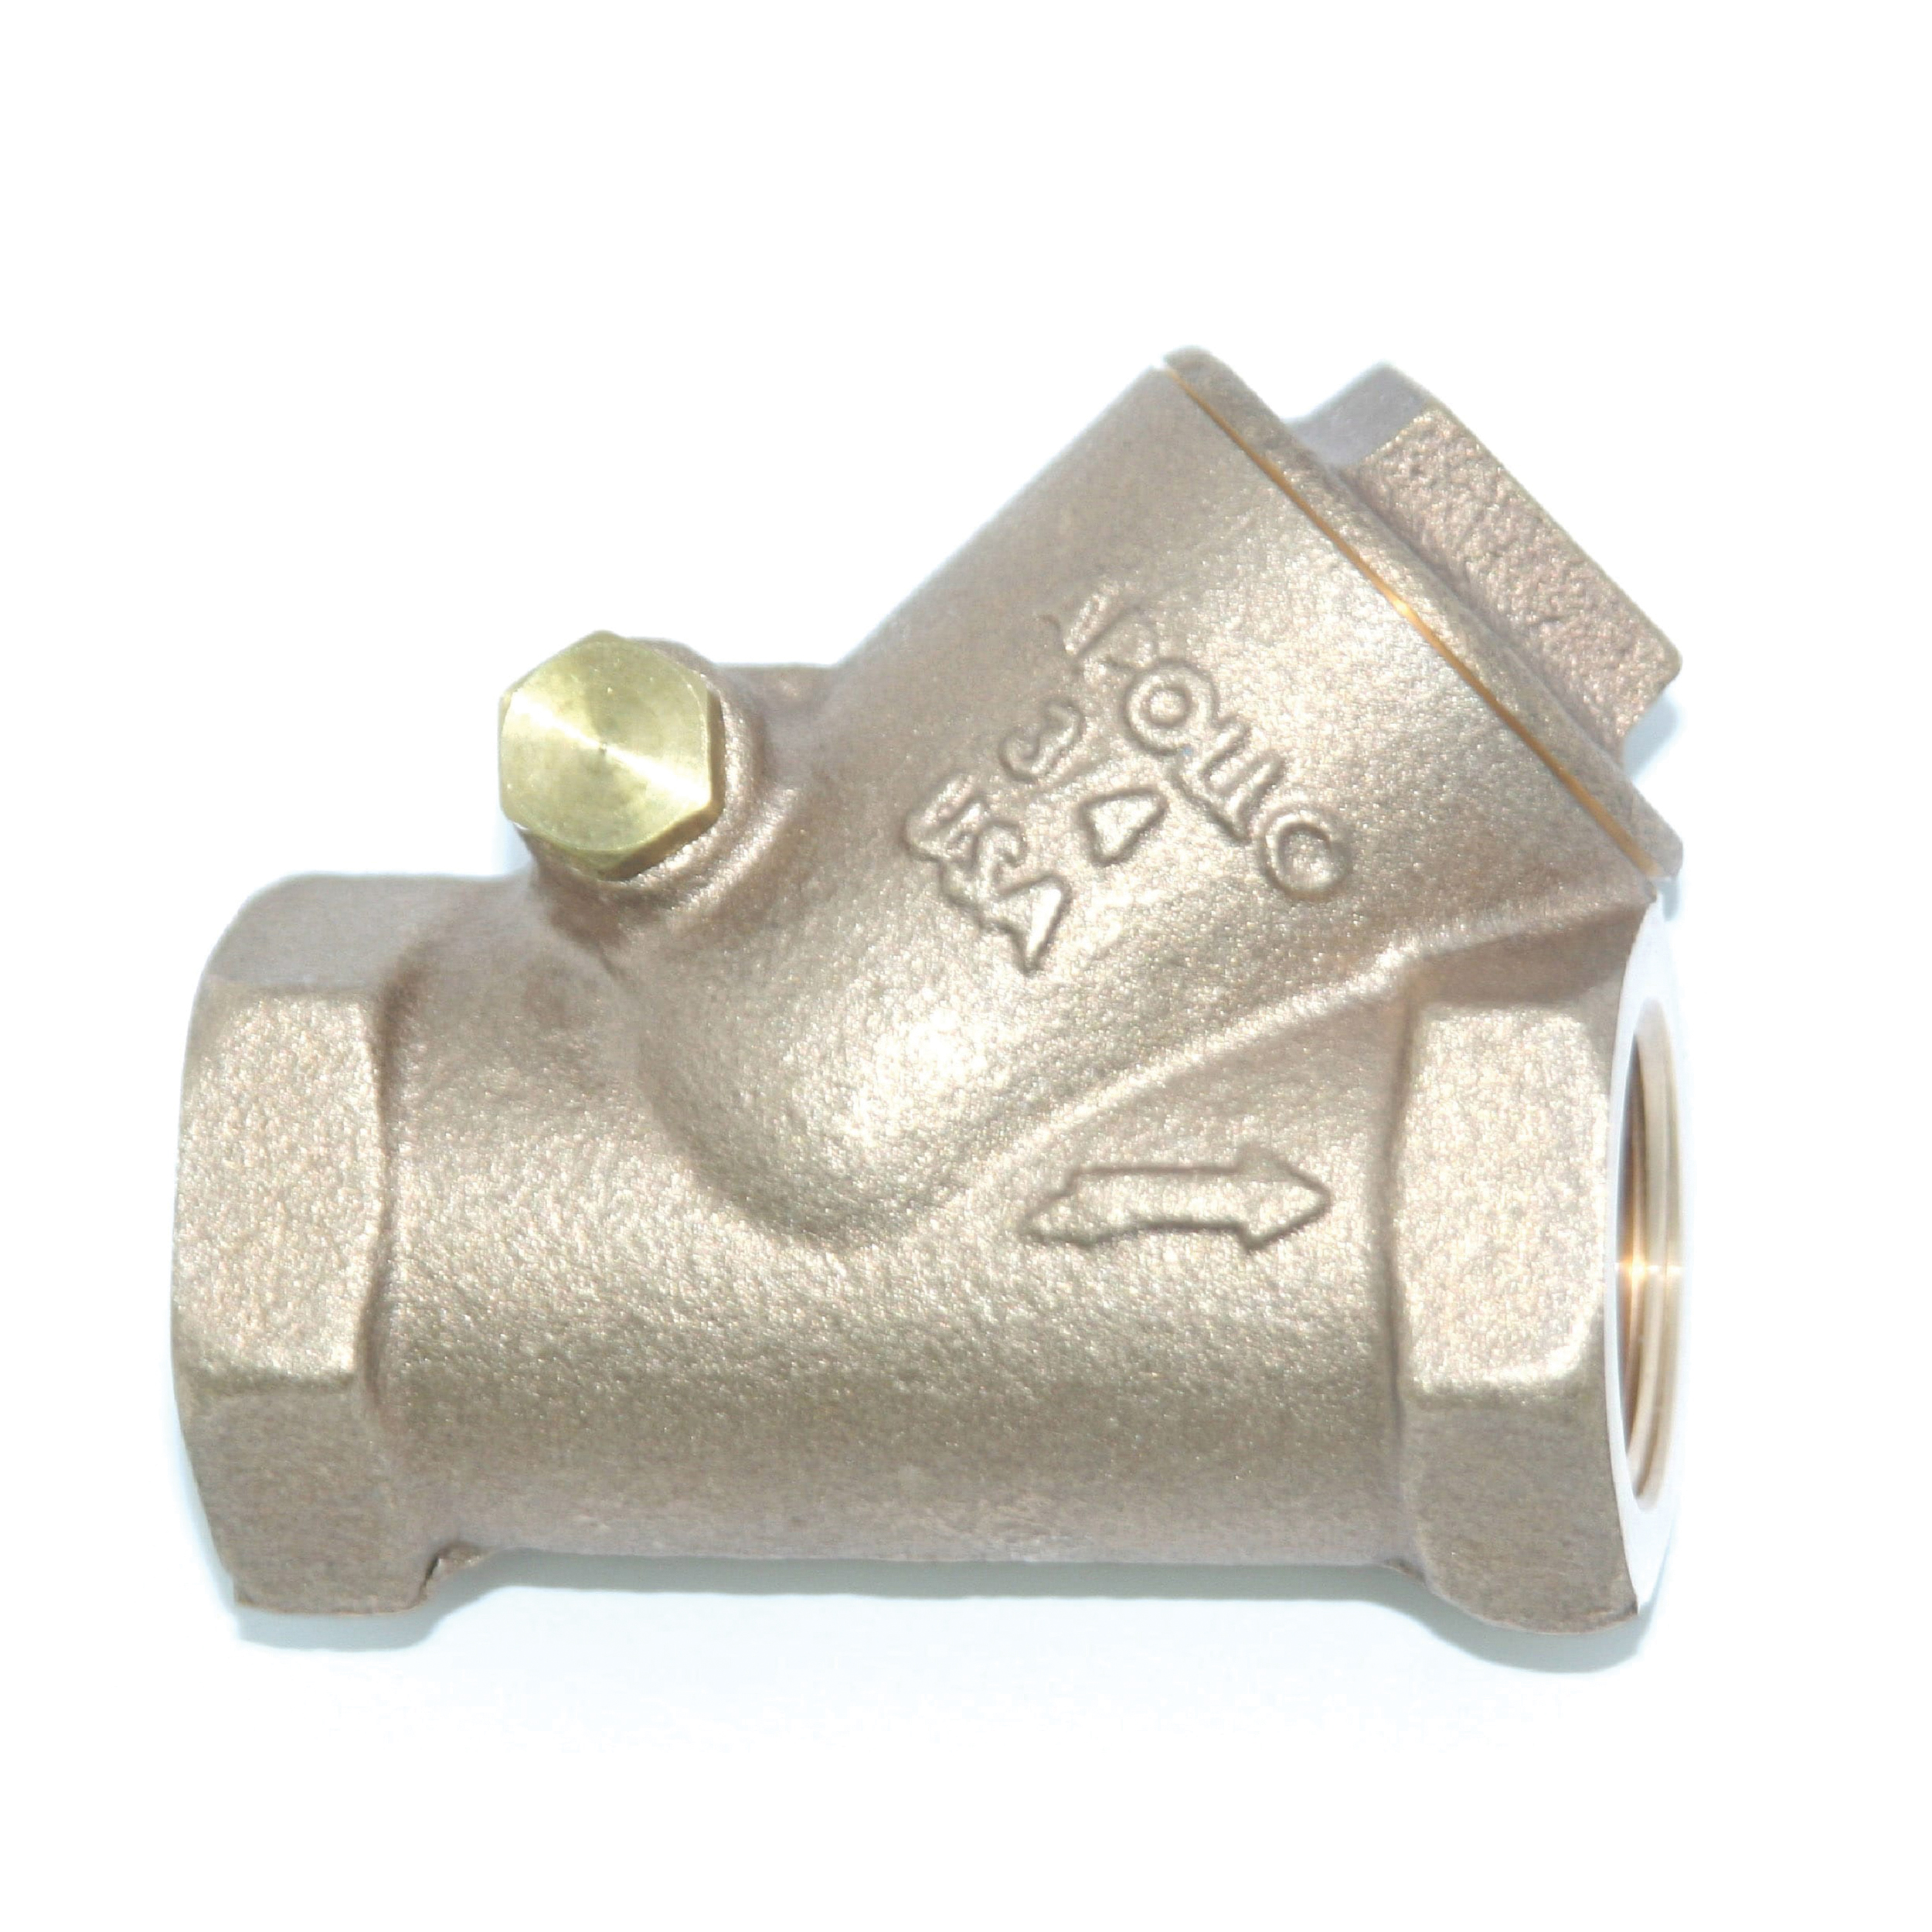 Apollo® 161T (61Y) Bronze Swing Y-Pattern Check Valve, NPT, 200 psi, -20 to 406 deg F, Domestic